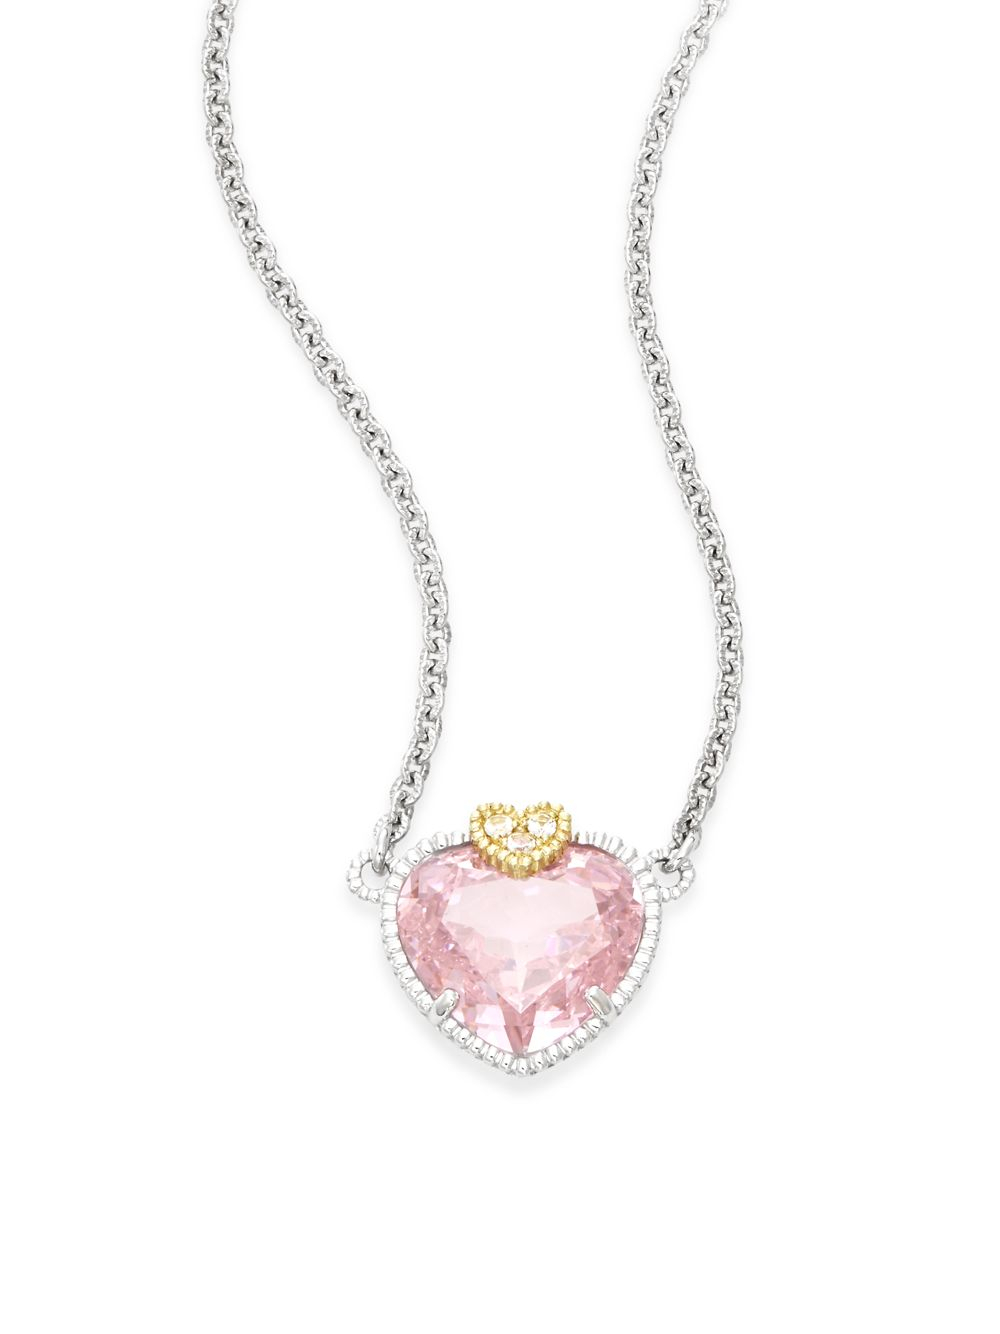 watch sterling braided judith with ripka qvc on heart verona necklace charm pendant